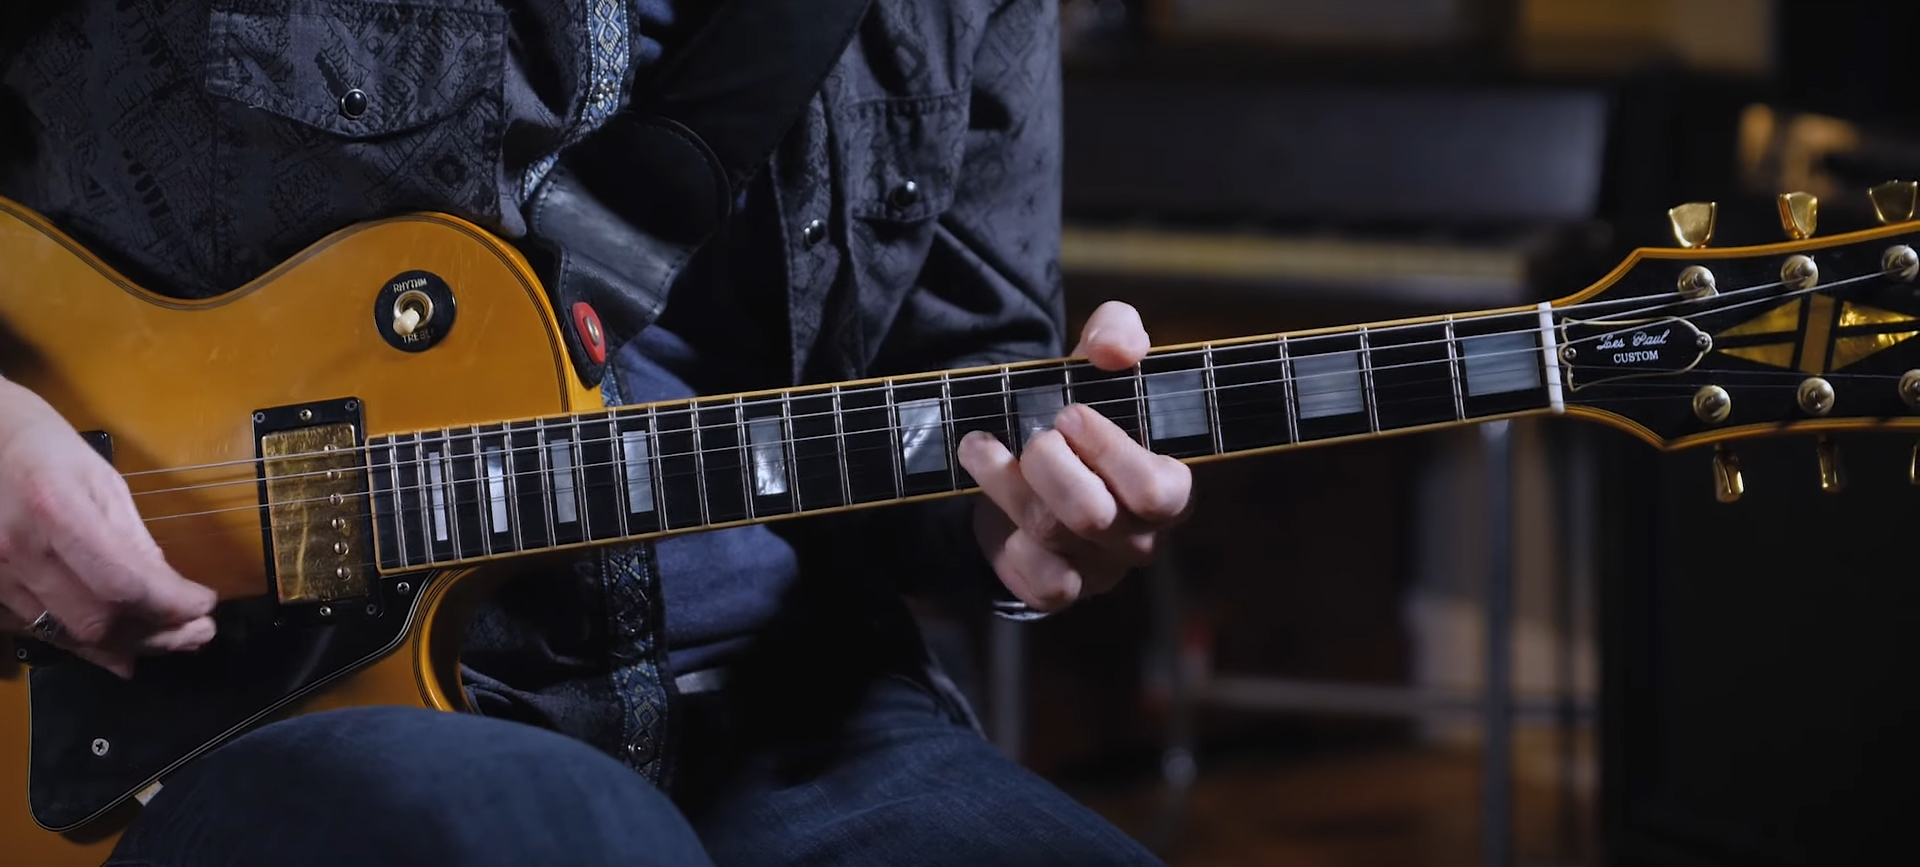 Learn to play: Albert King riffs in standard tuning